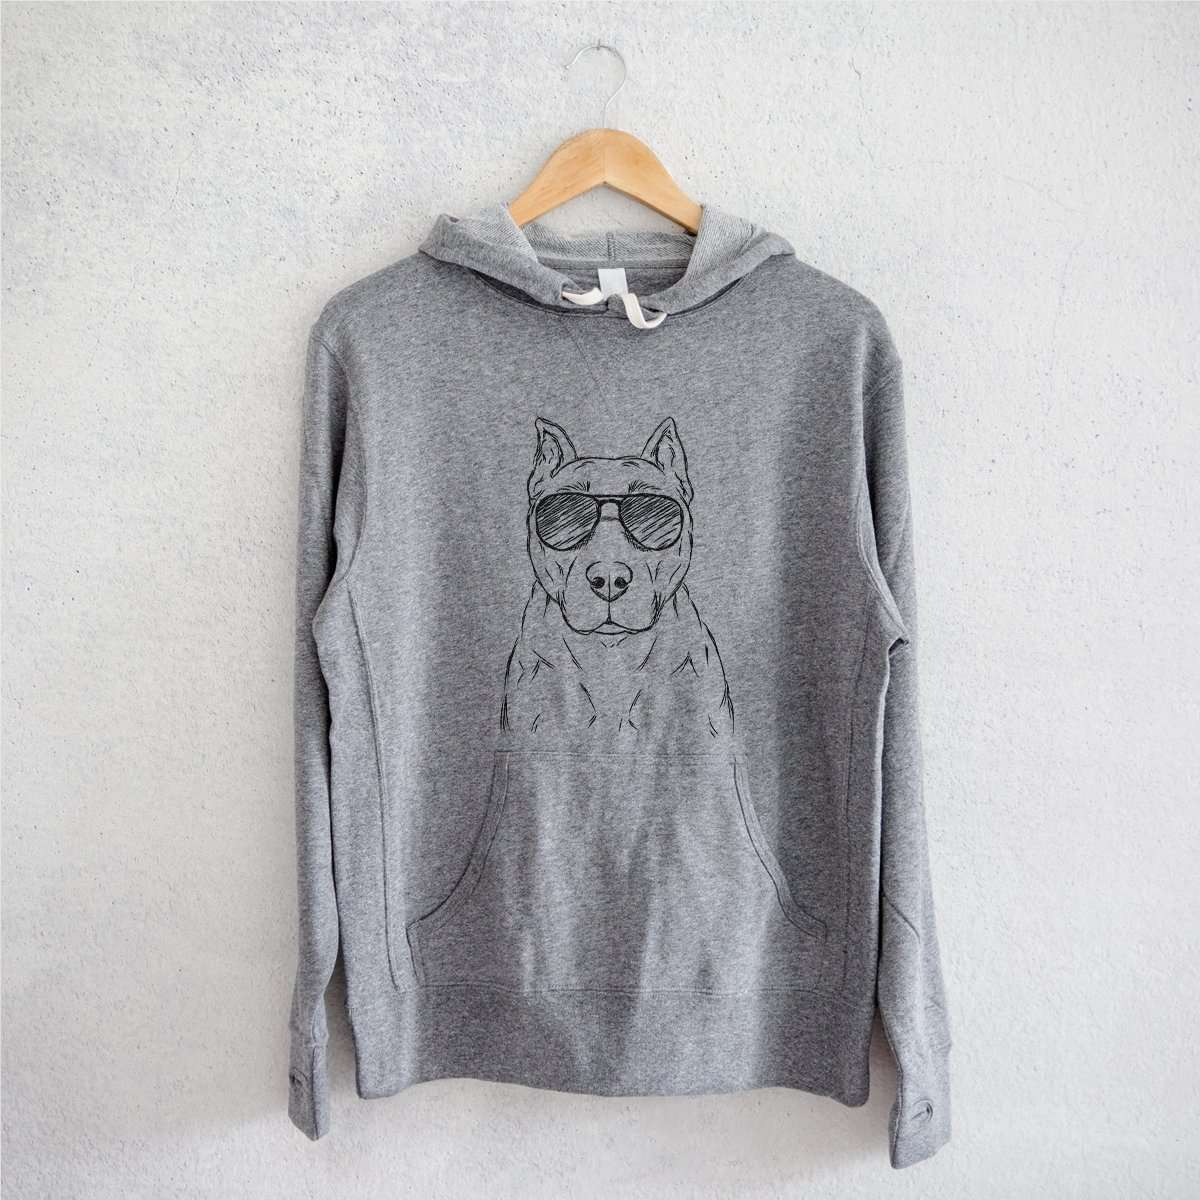 Bane the Staffordshire/Pitbull Terrier - Grey French Terry Sweatshirt - Unisex Slim Fit